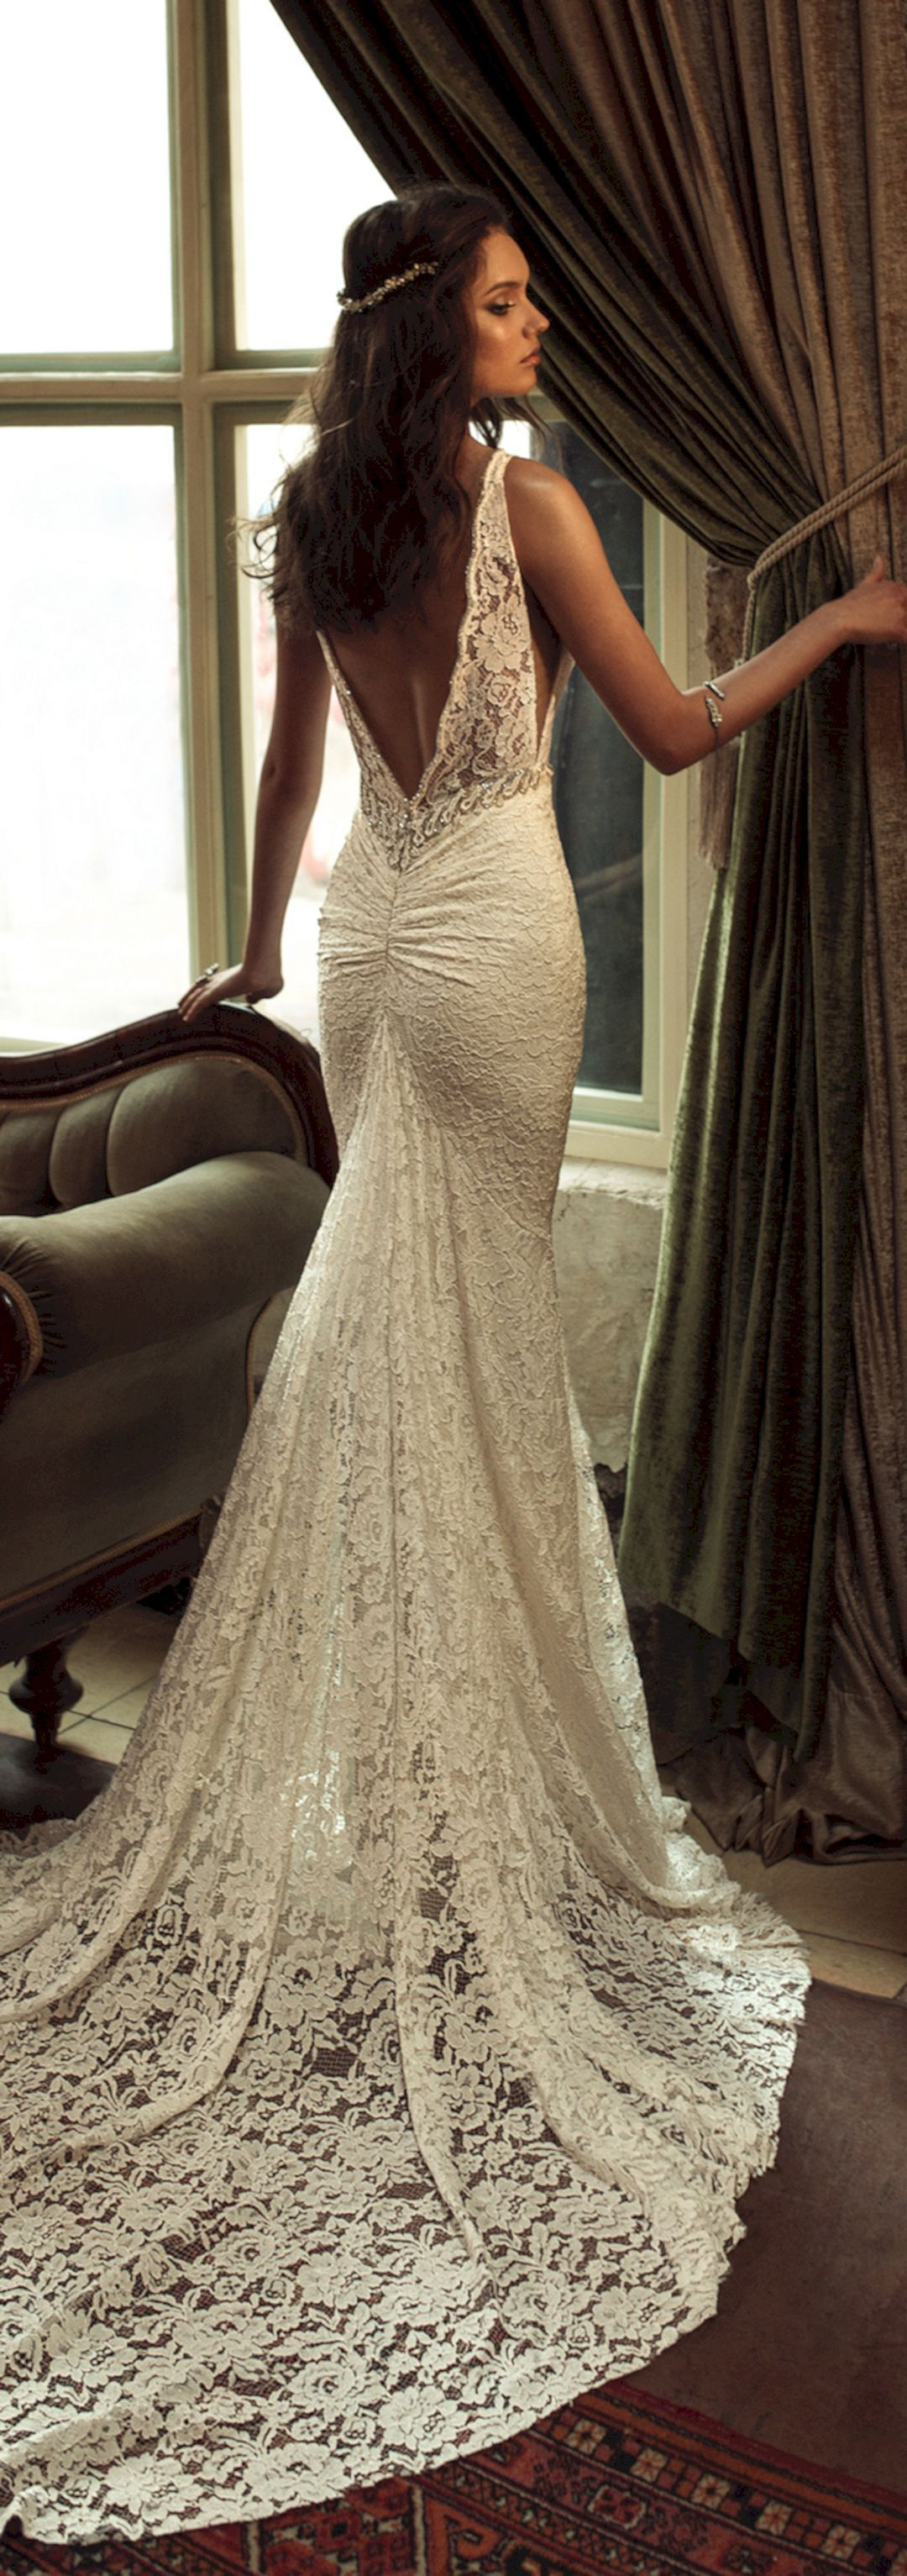 44+ Stunning Wedding Dresses & Gowns for Your Big Day   Wedding ...